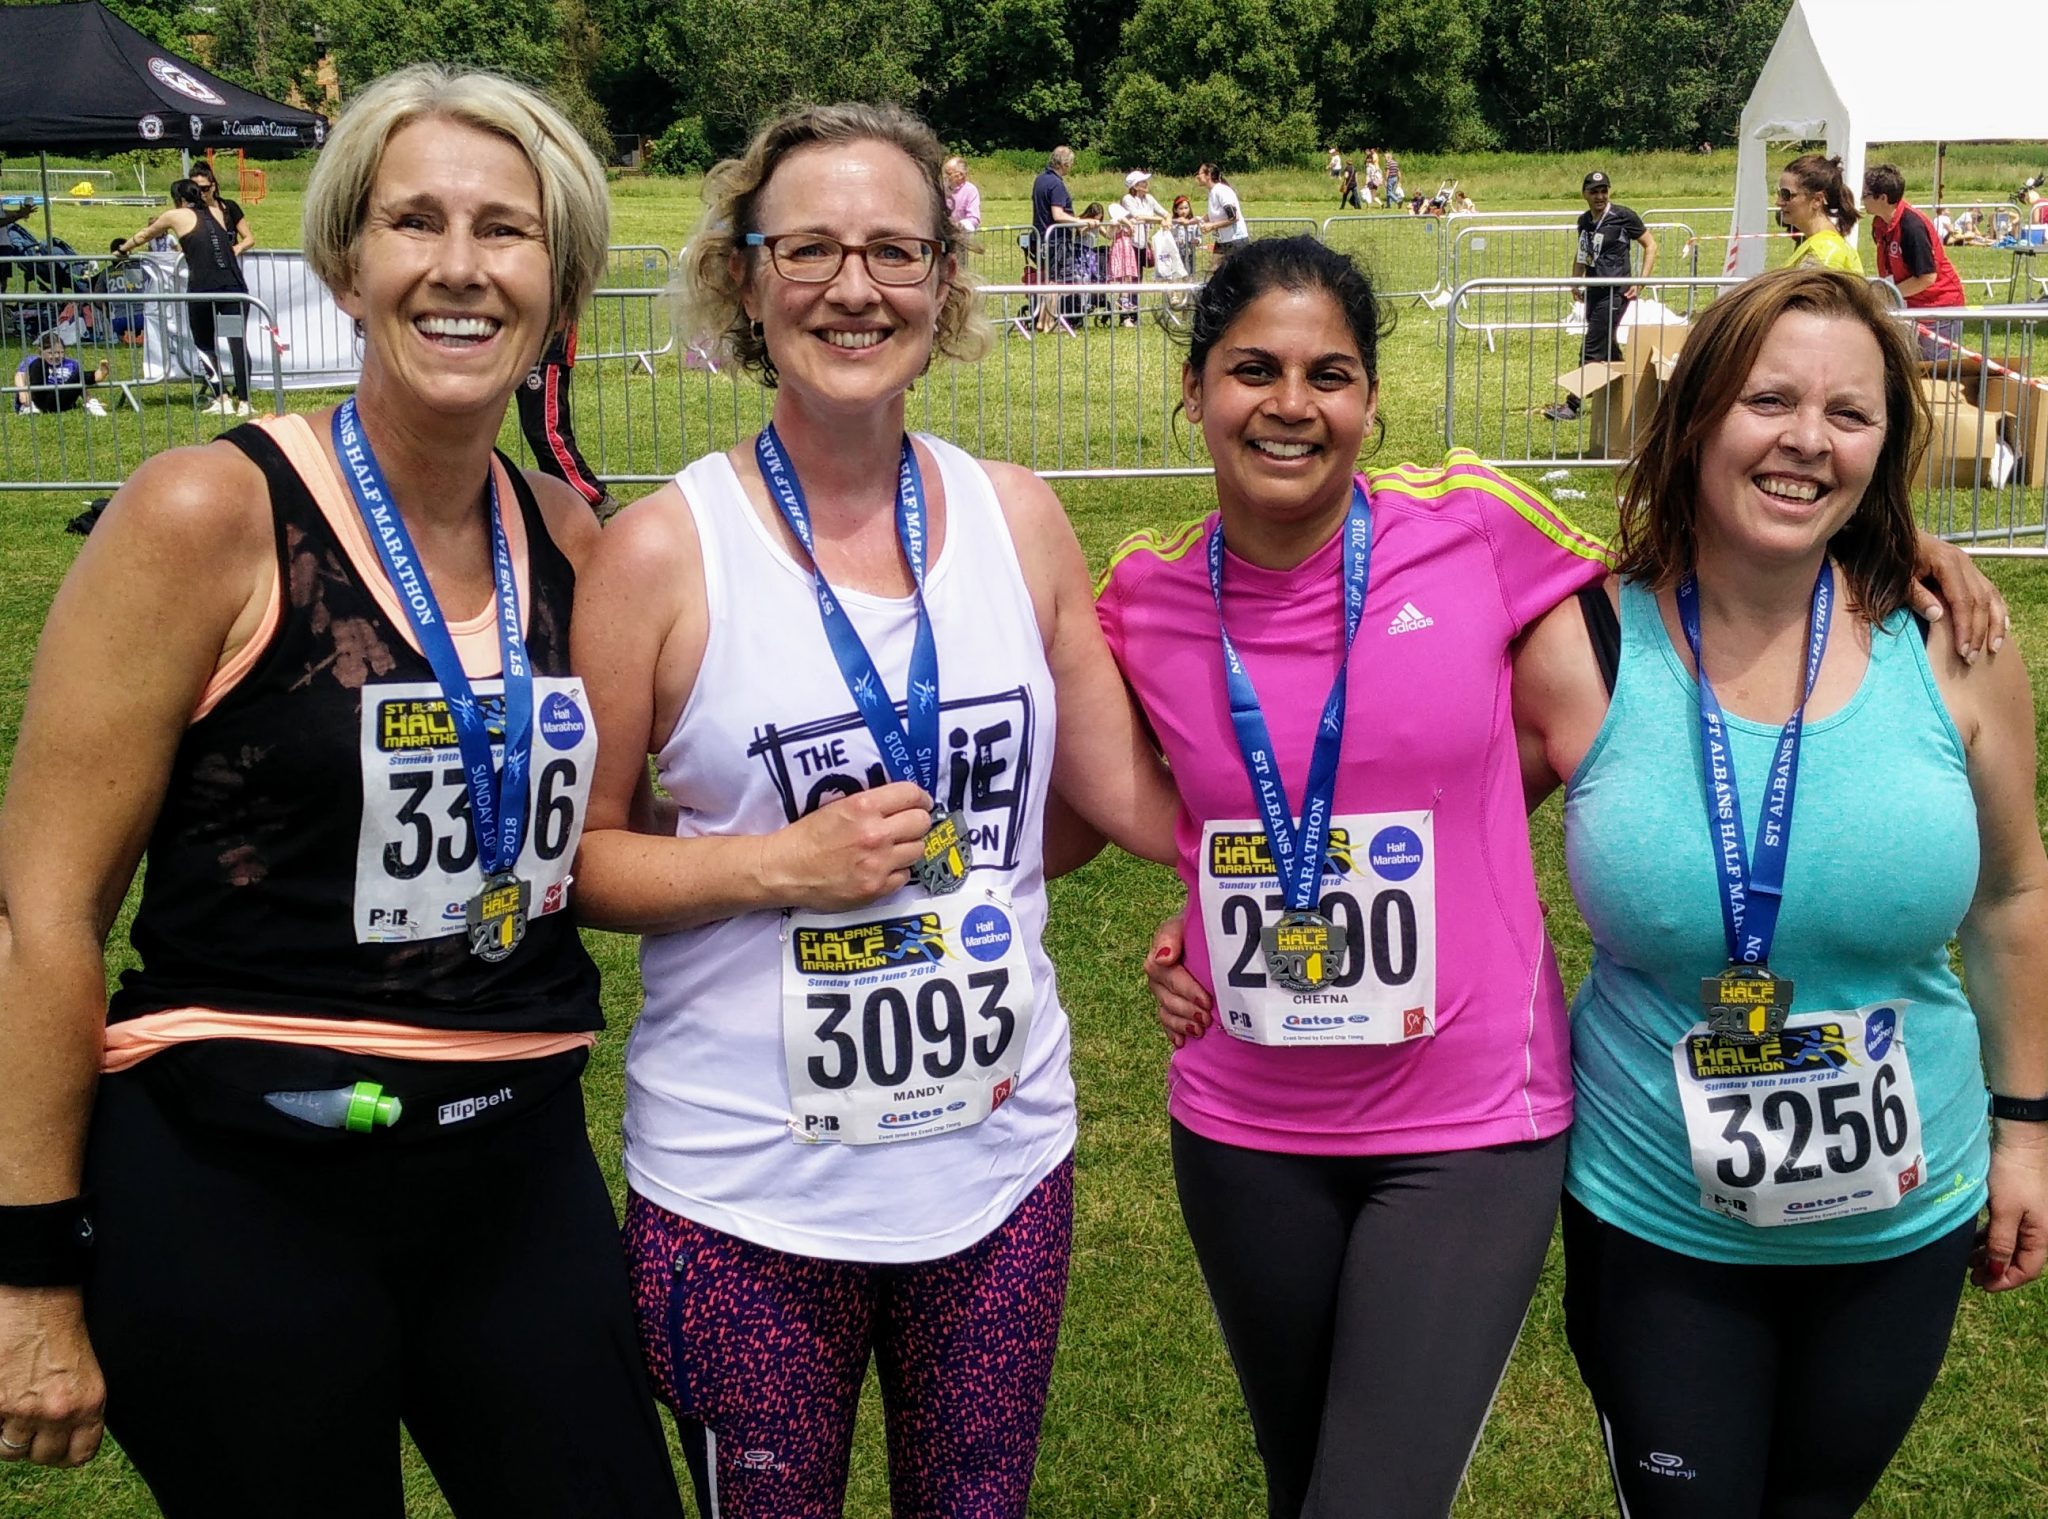 RUN Harpenden Finish Group Photo St Albans Half 2018